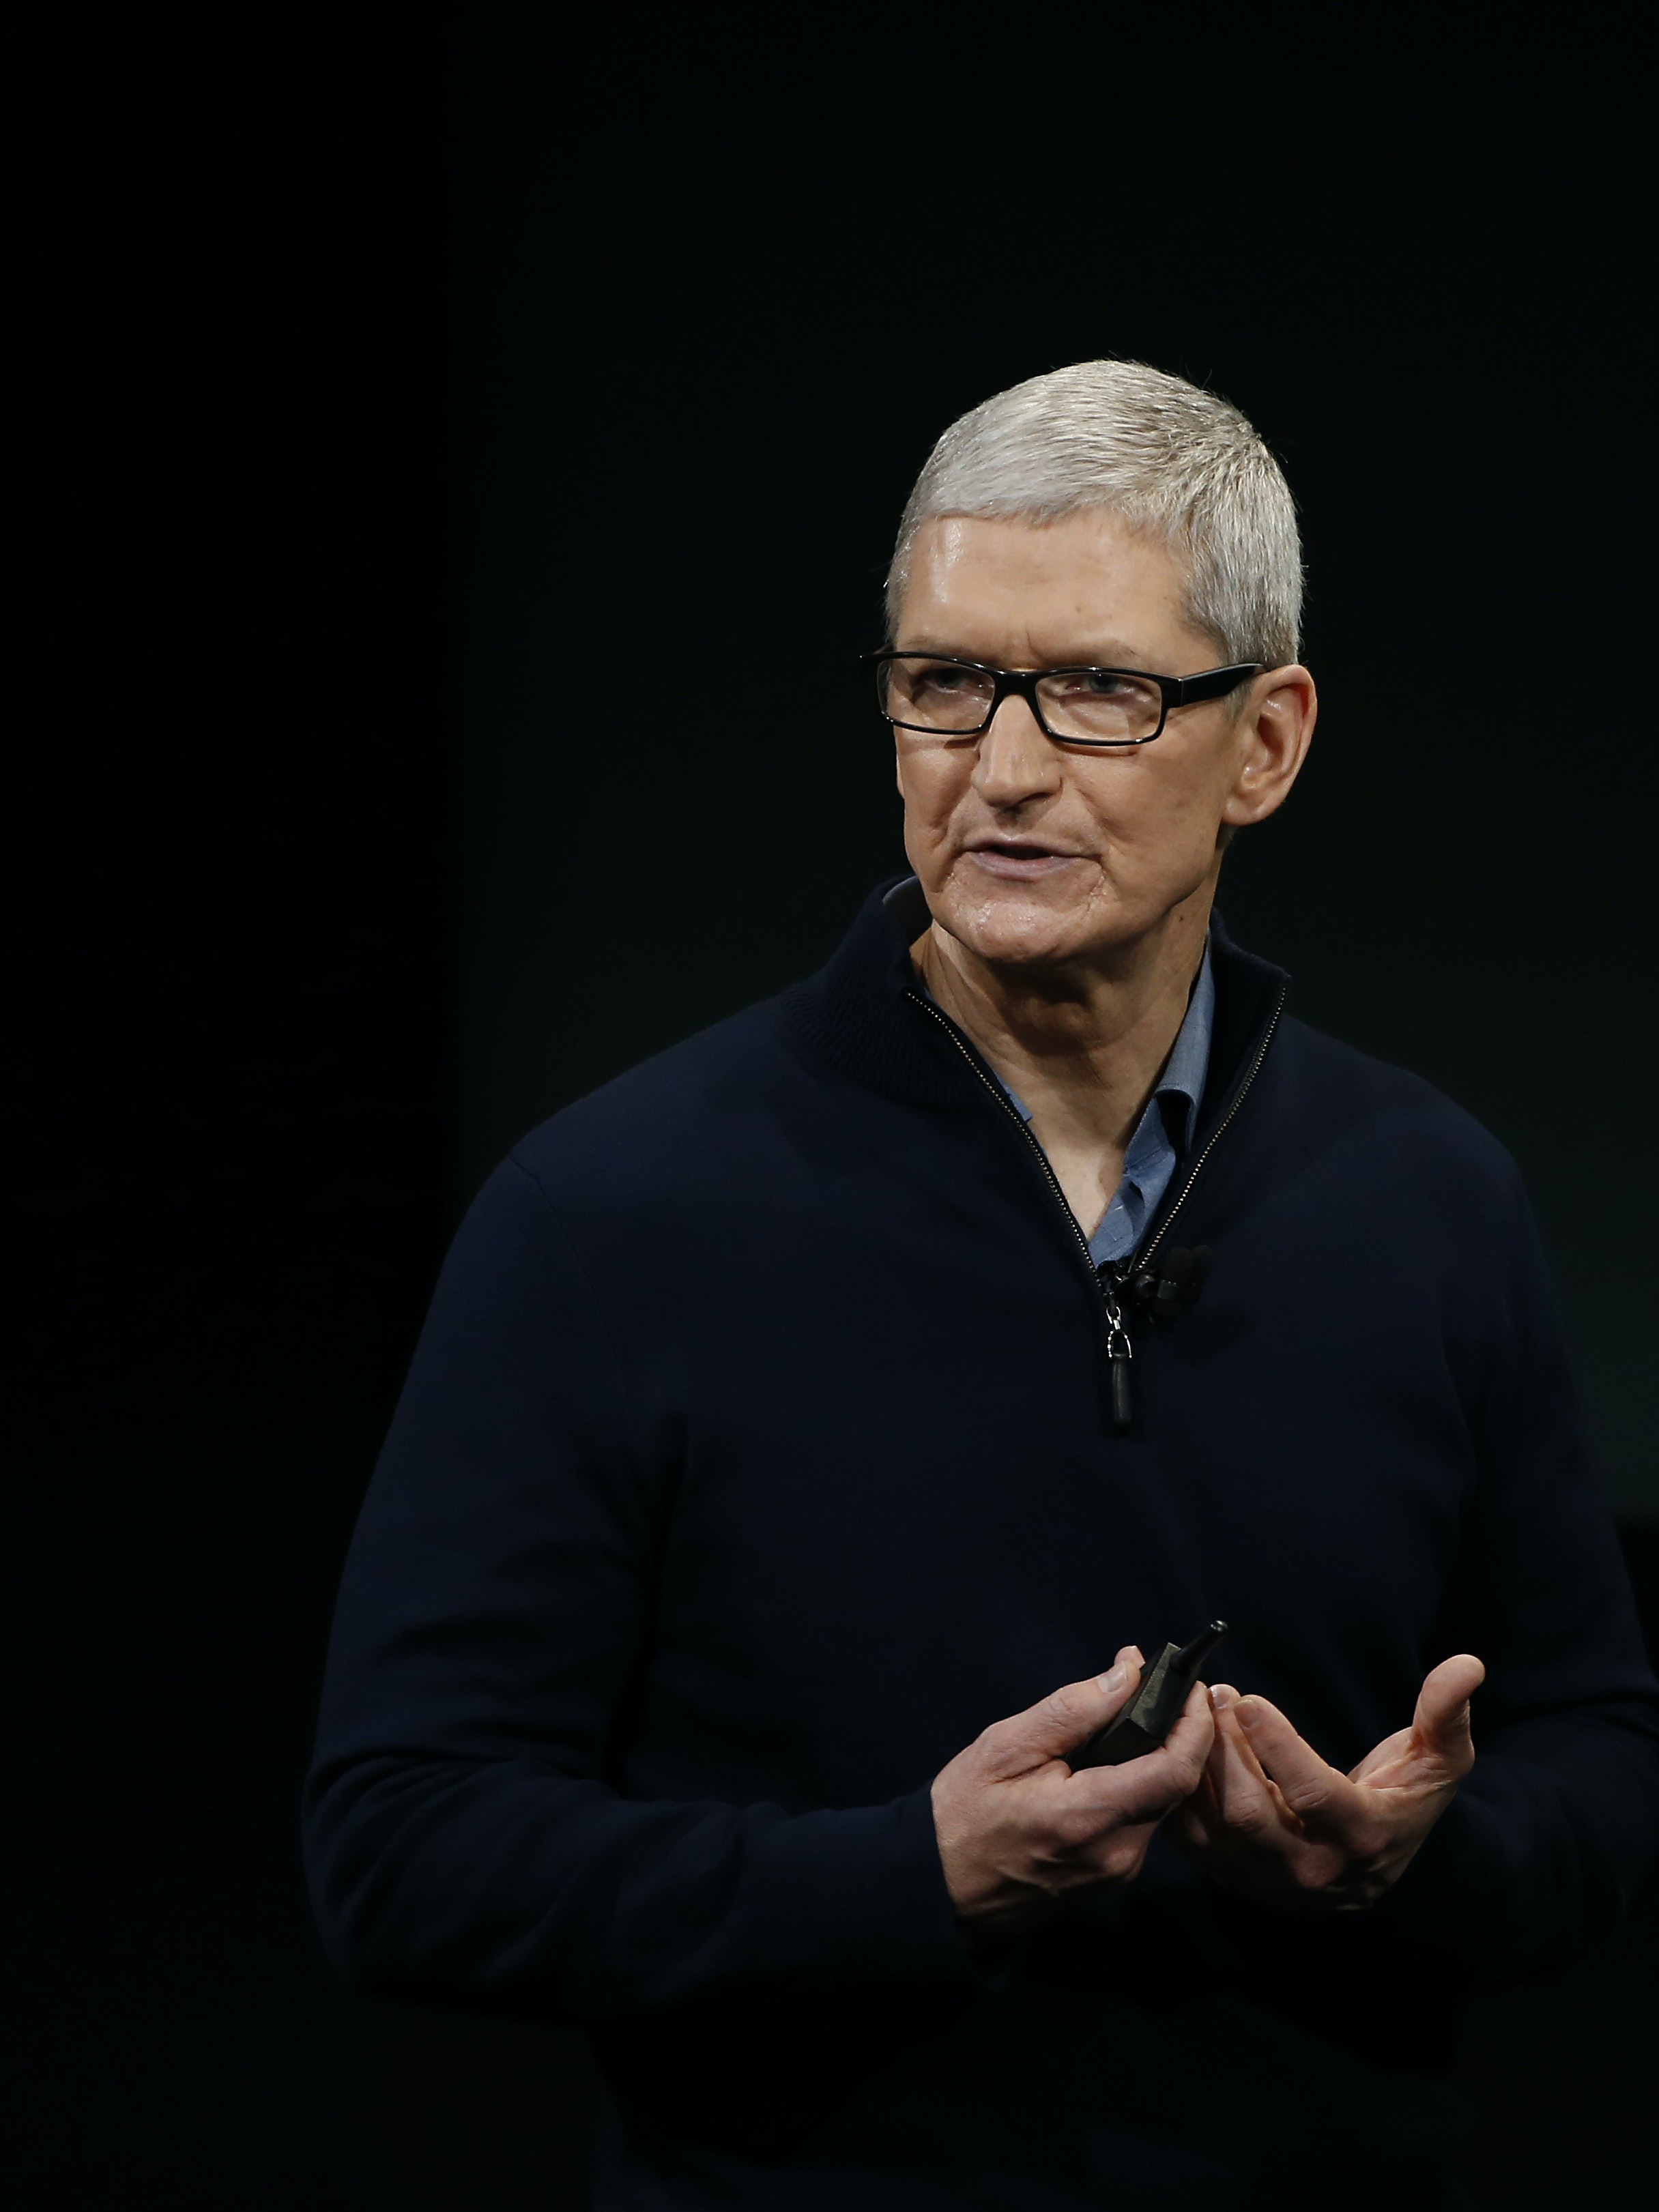 CUPERTINO, CA - OCTOBER 27: Apple CEO Tim Cook speaks on stage during a product launch event on October 27, 2016 in Cupertino, California. Apple Inc. unveiled the latest iterations of its MacBook Pro line of laptops and TV app. (Photo by Stephen Lam/Getty Images)